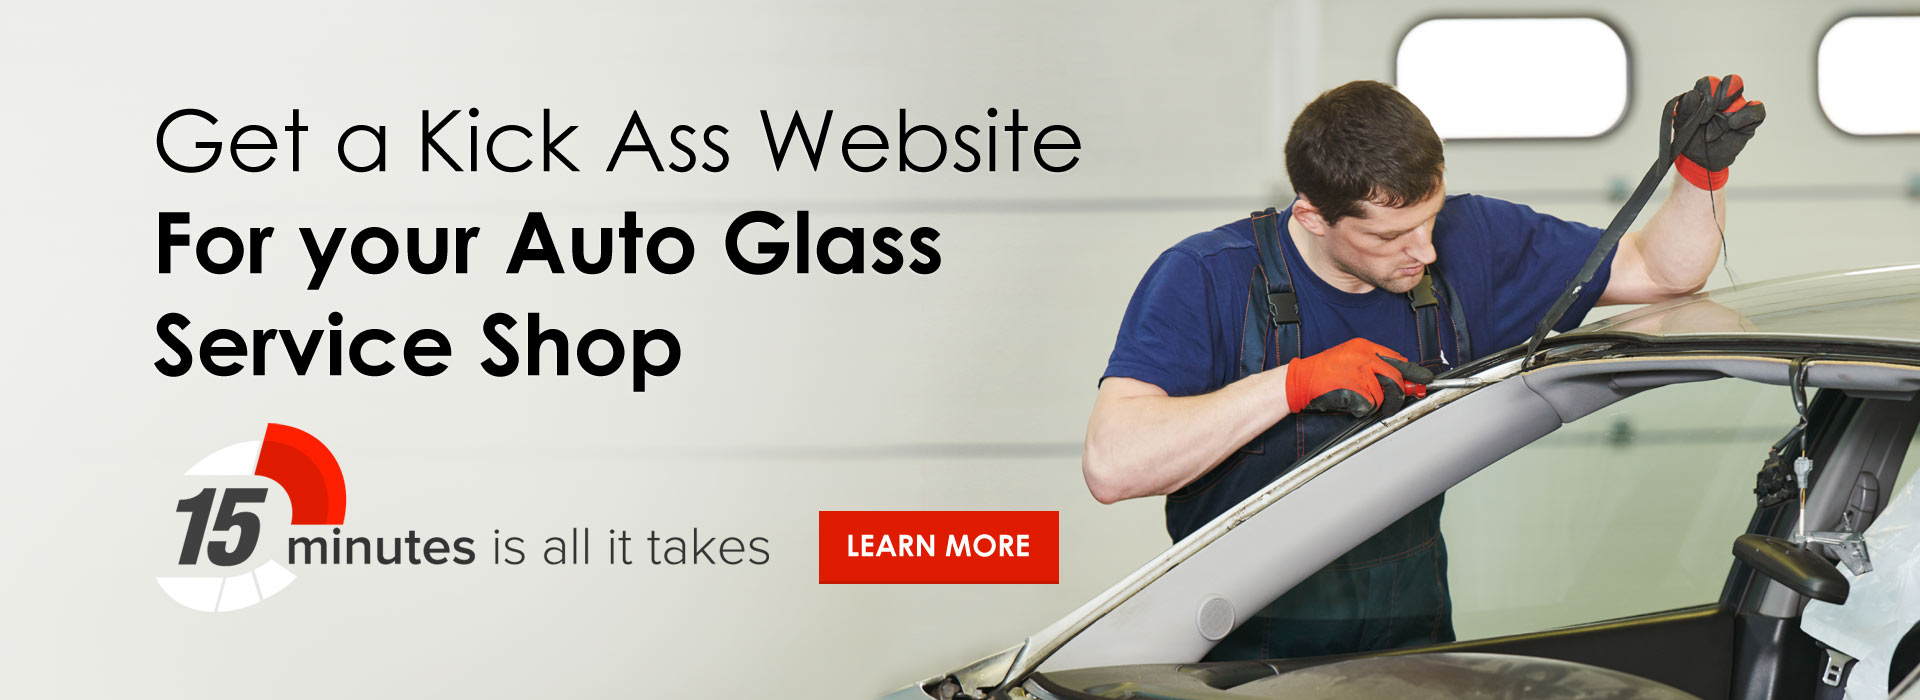 Auto Glass Service Shop Websites